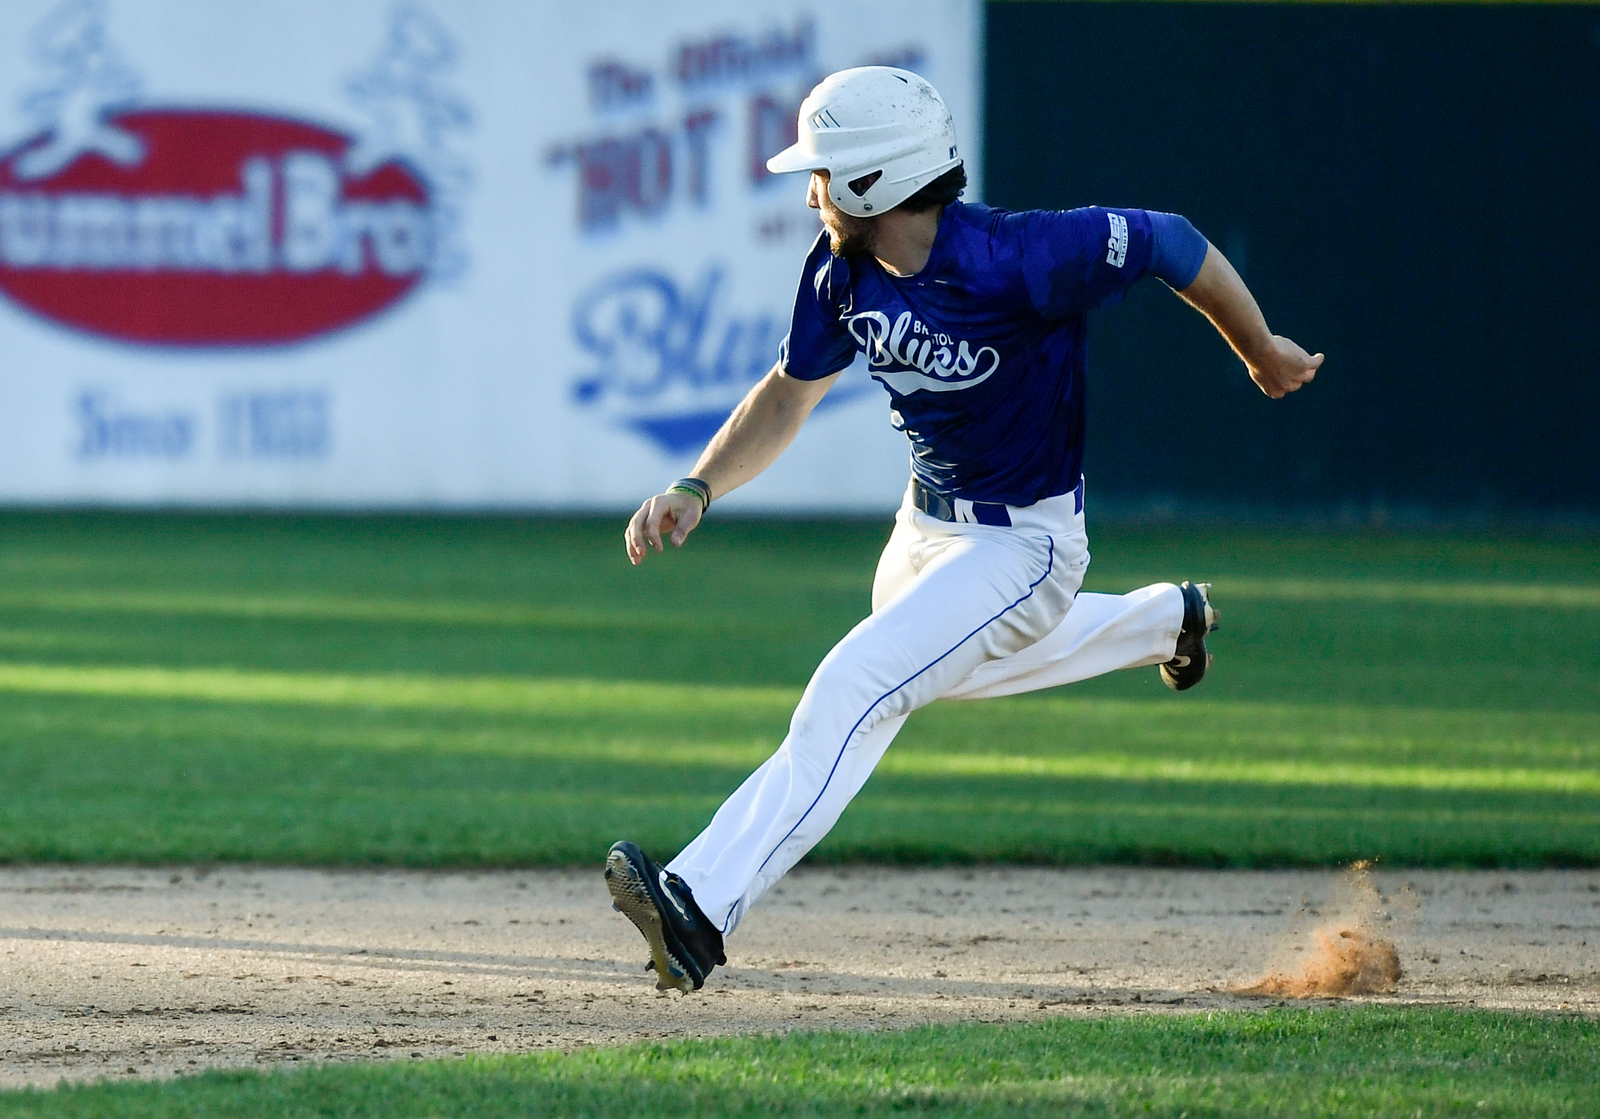 070317  Wesley Bunnell | Staff  The Bristol Blues held military appreciation night at Muzzy Field on Monday evening. Chris Davis (15) eyes the progress of the ball as he rounds second base.